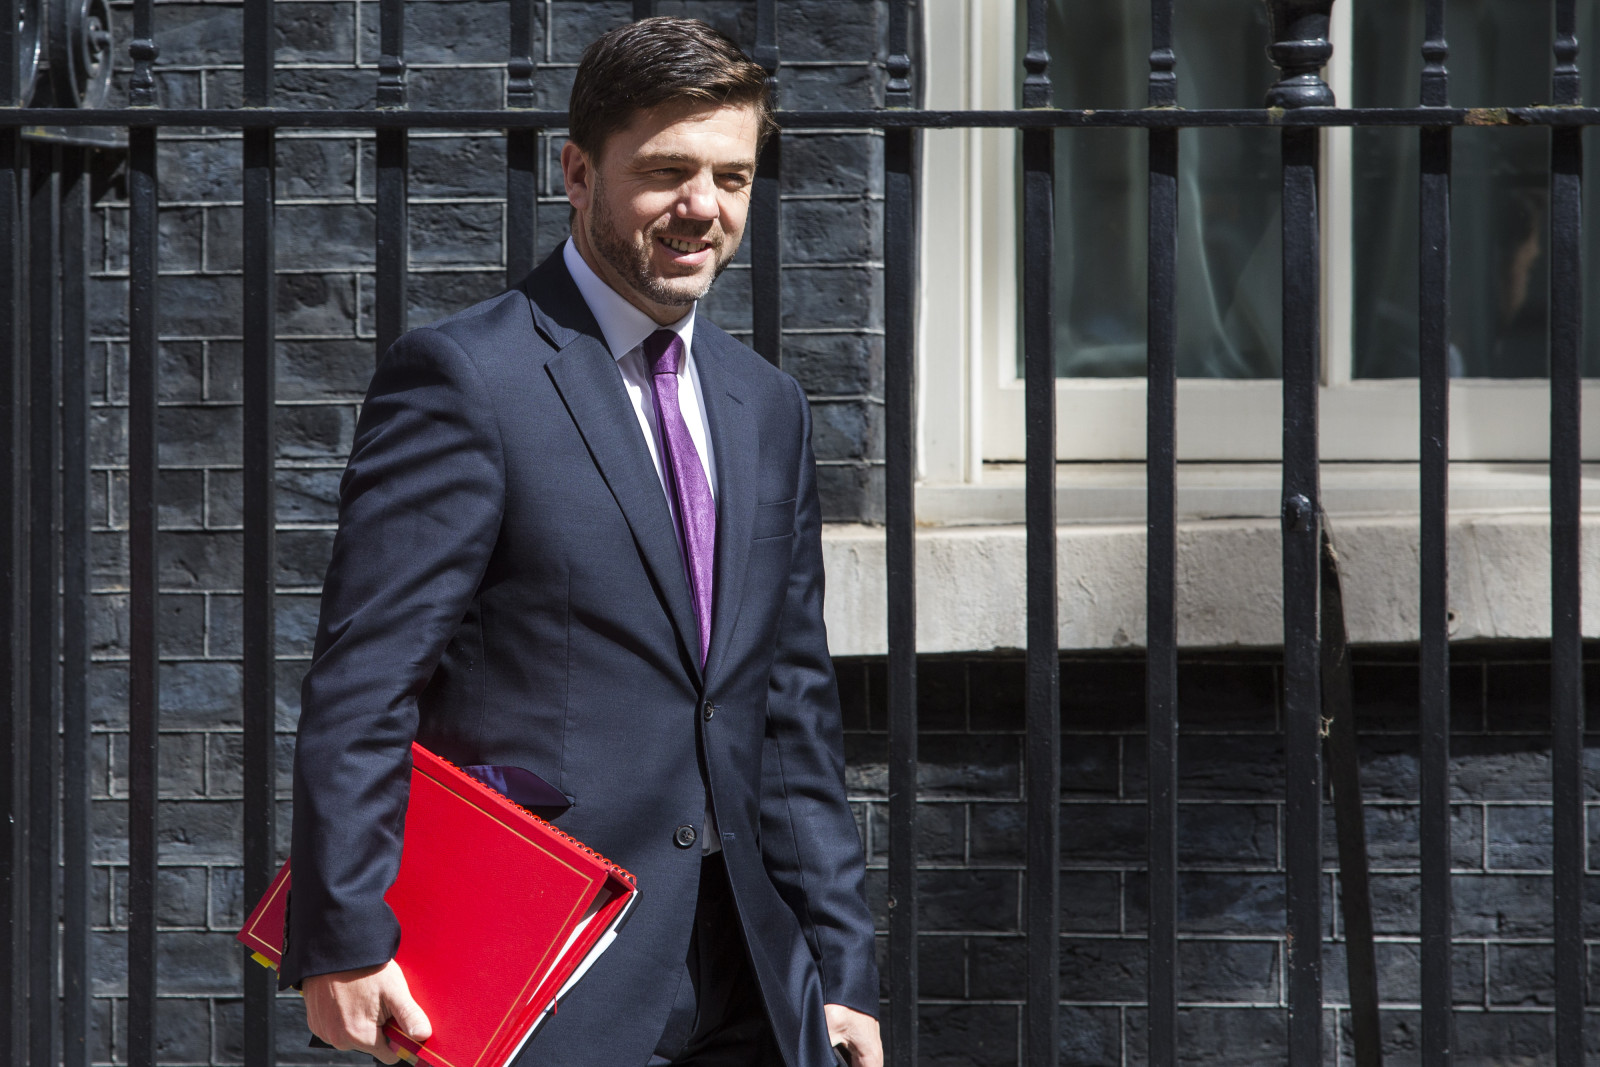 Failed Tory leadership hopeful Stephen Crabb sent sex messages to a woman in her 20s